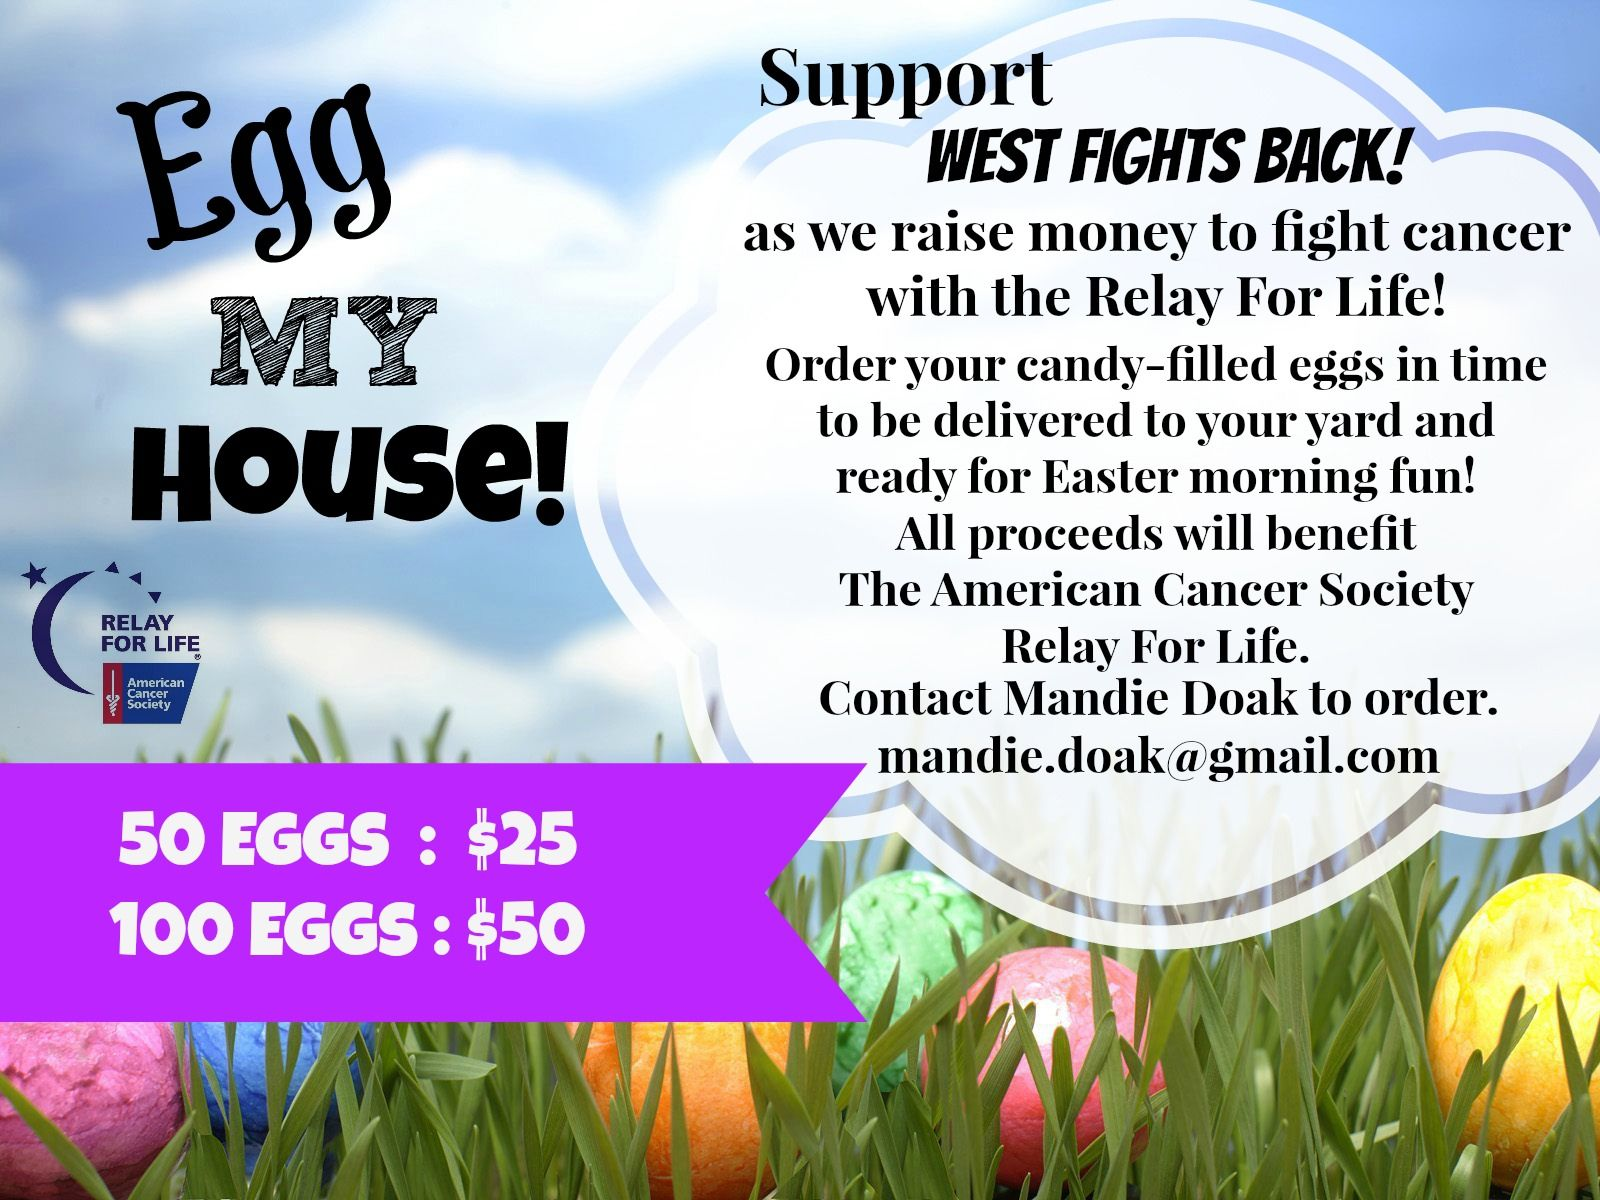 fa345d371e712f Relay For Life.... Egg My House! Fun Easter Fundraiser!